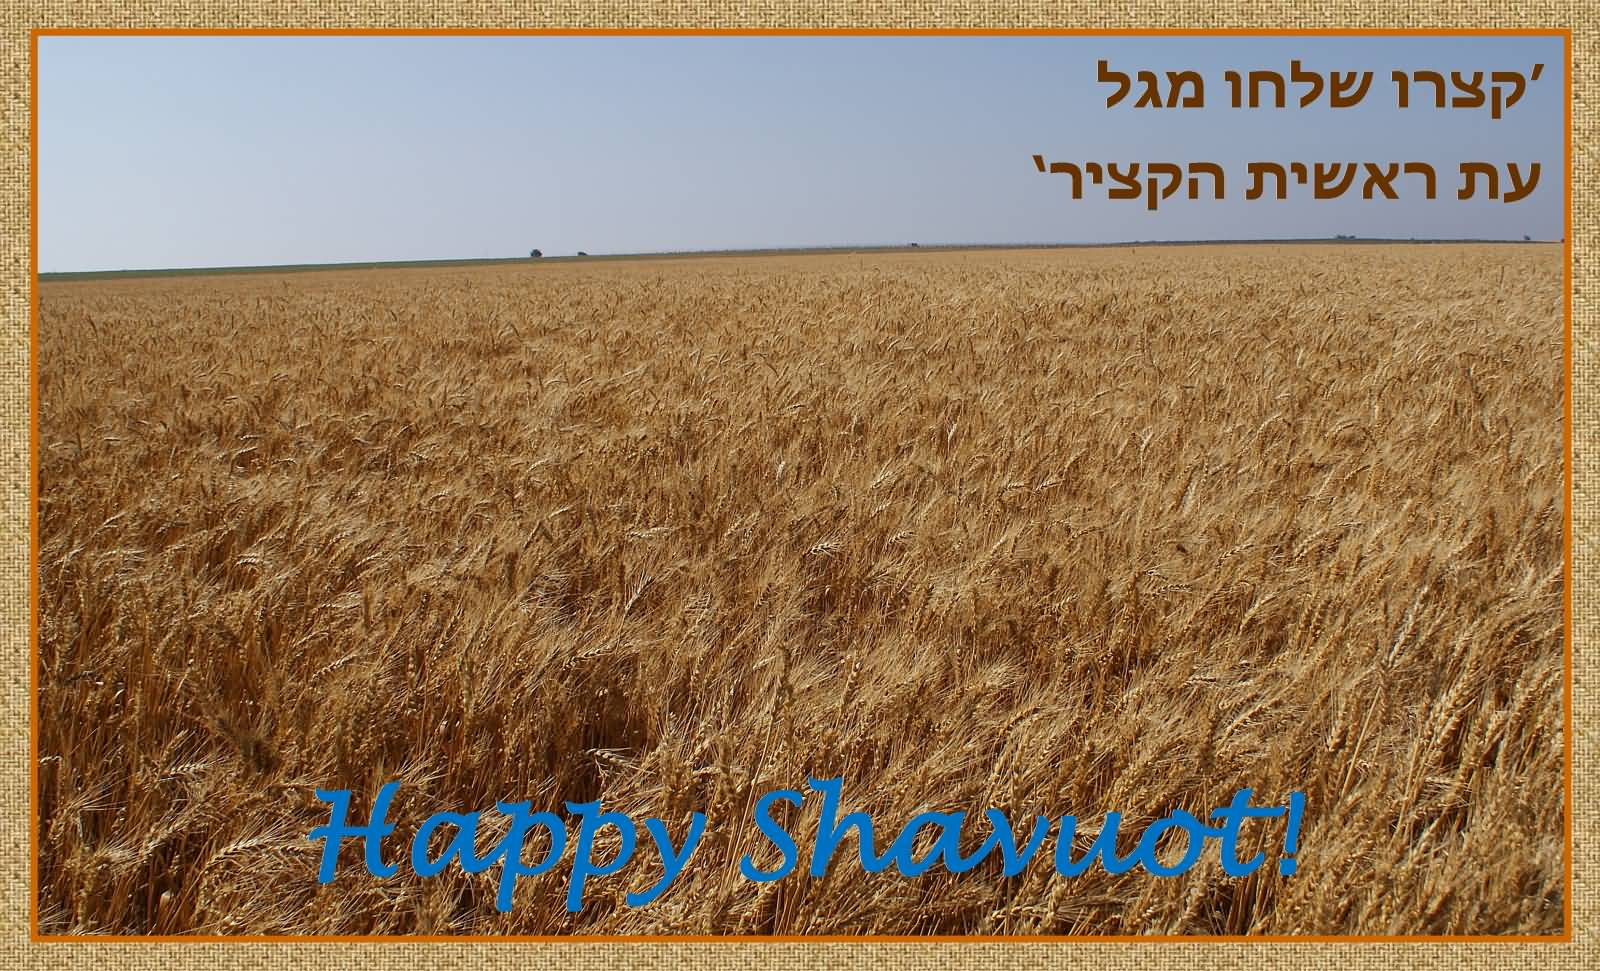 Happy Shavuot Field Of Wheat